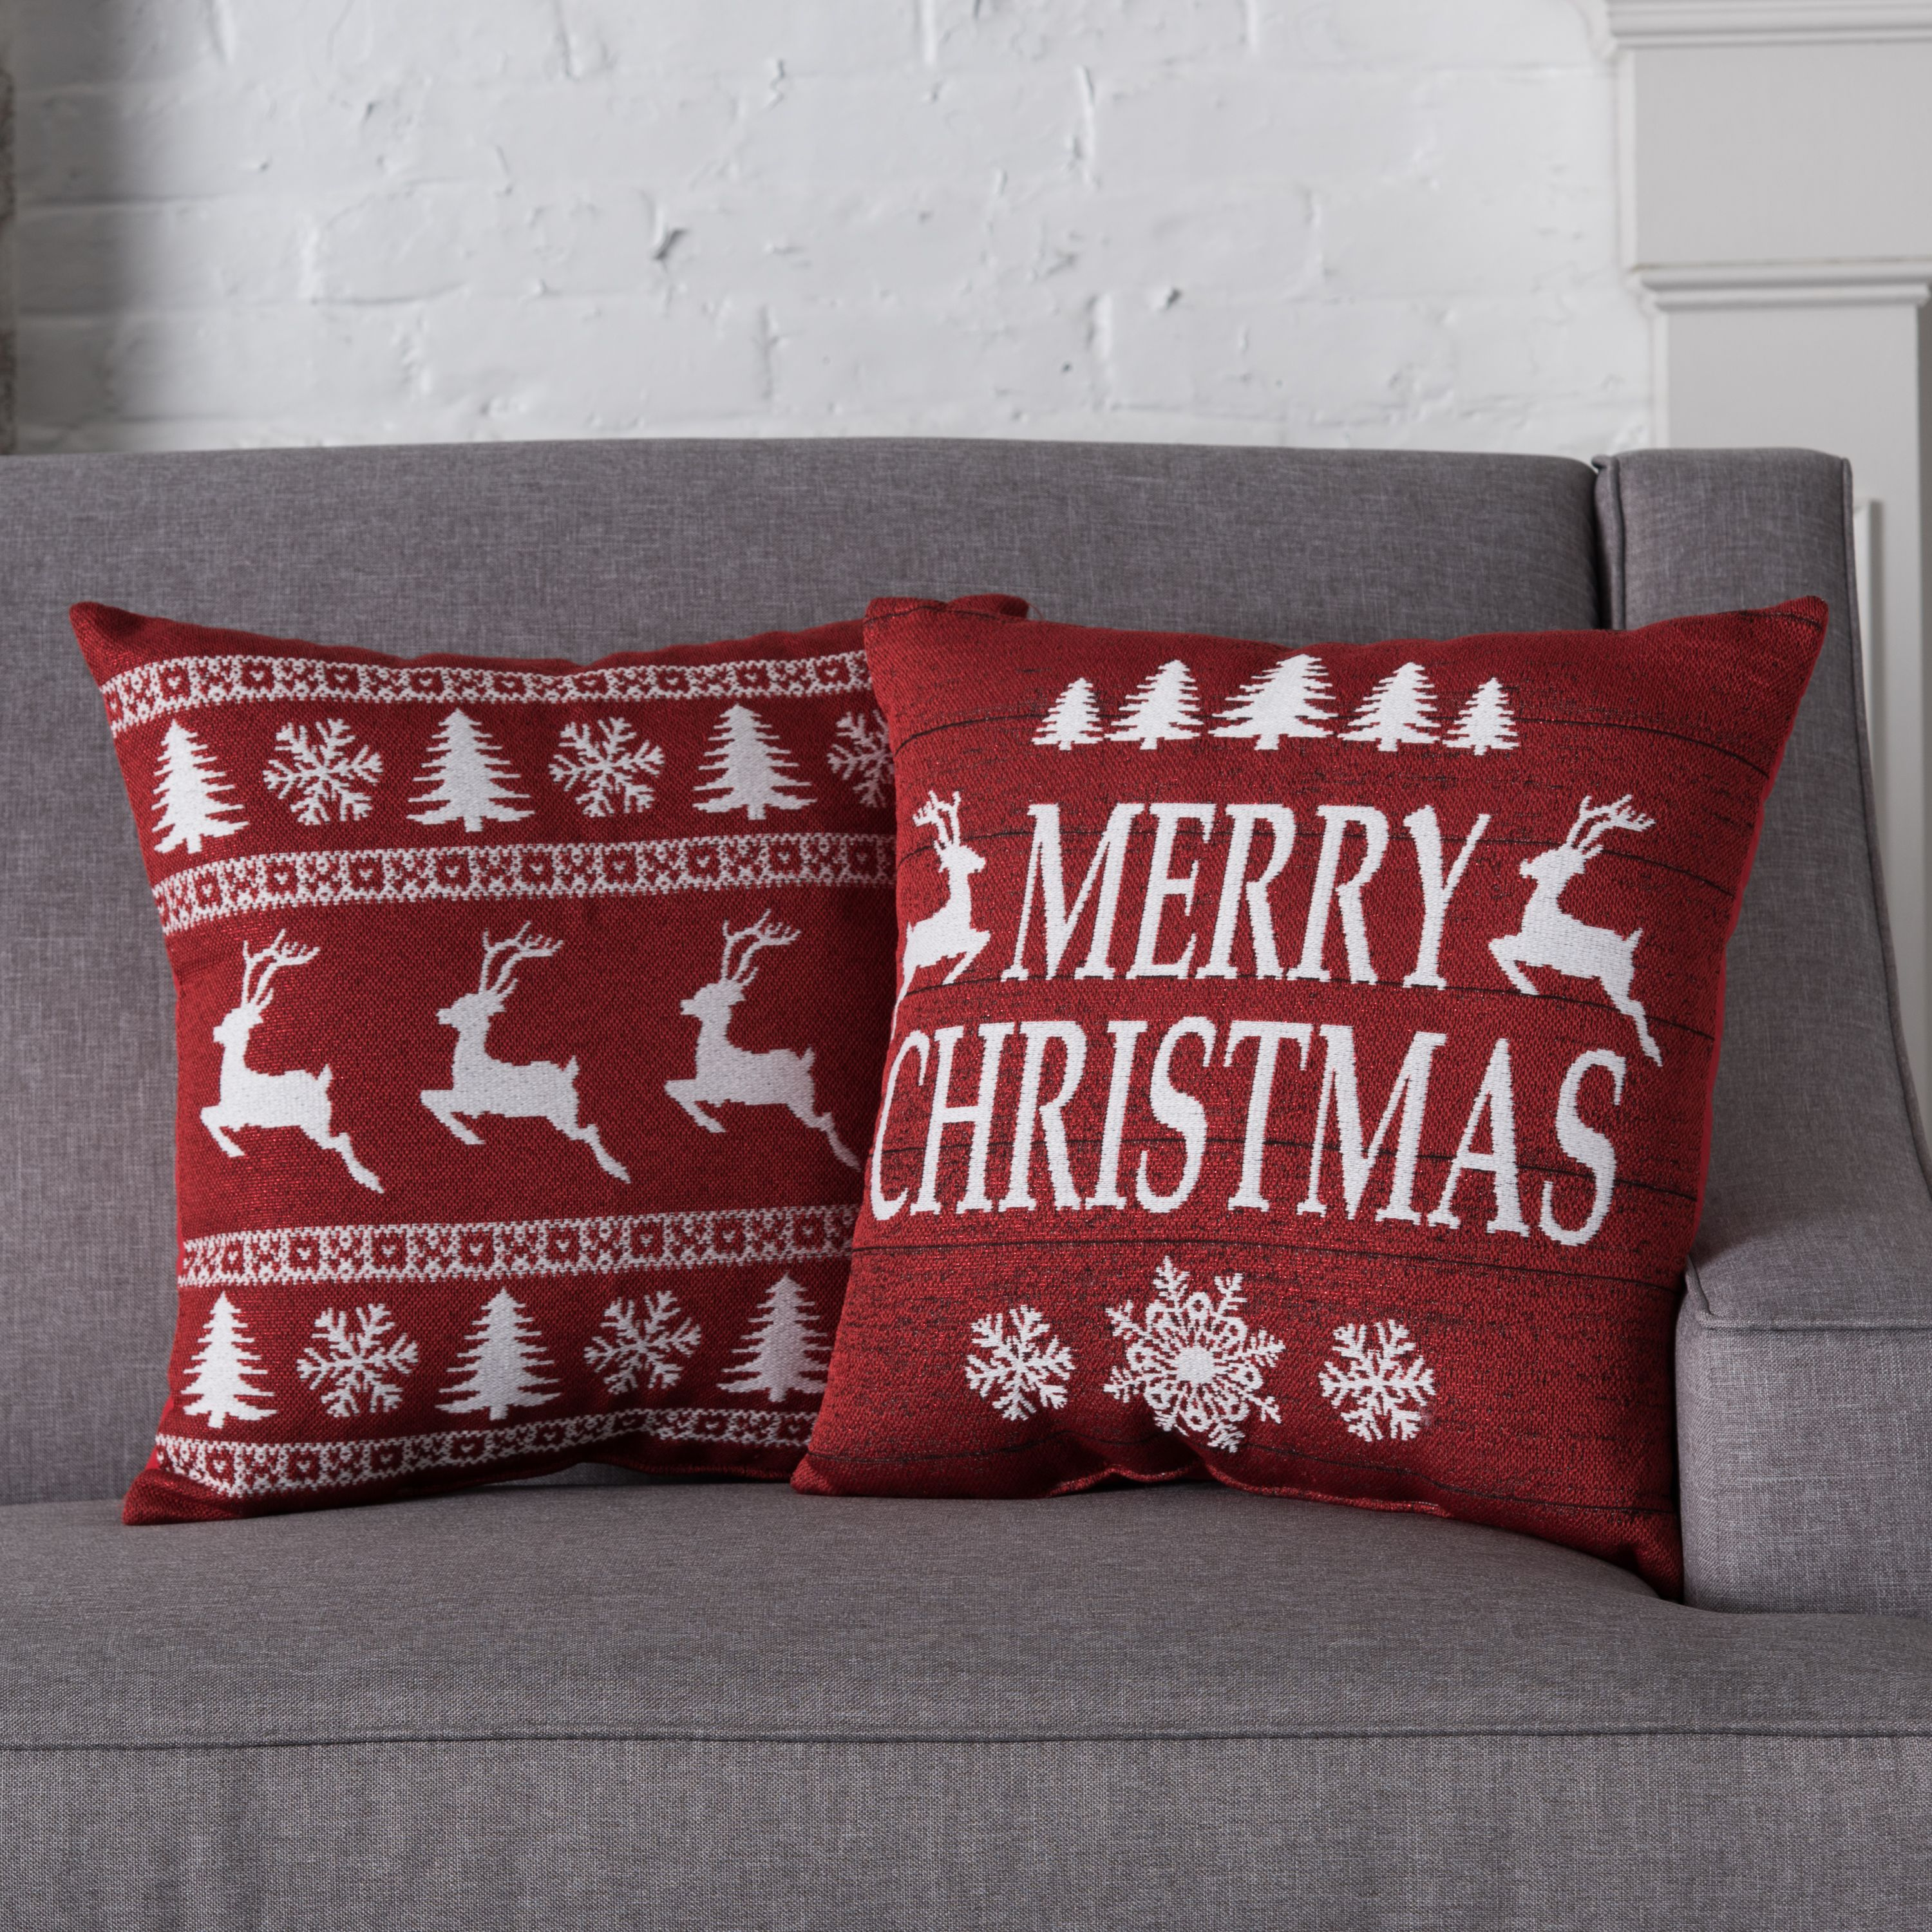 Holiday Time Sweater & Wood Sign Decorative Throw Pillows, 2pk